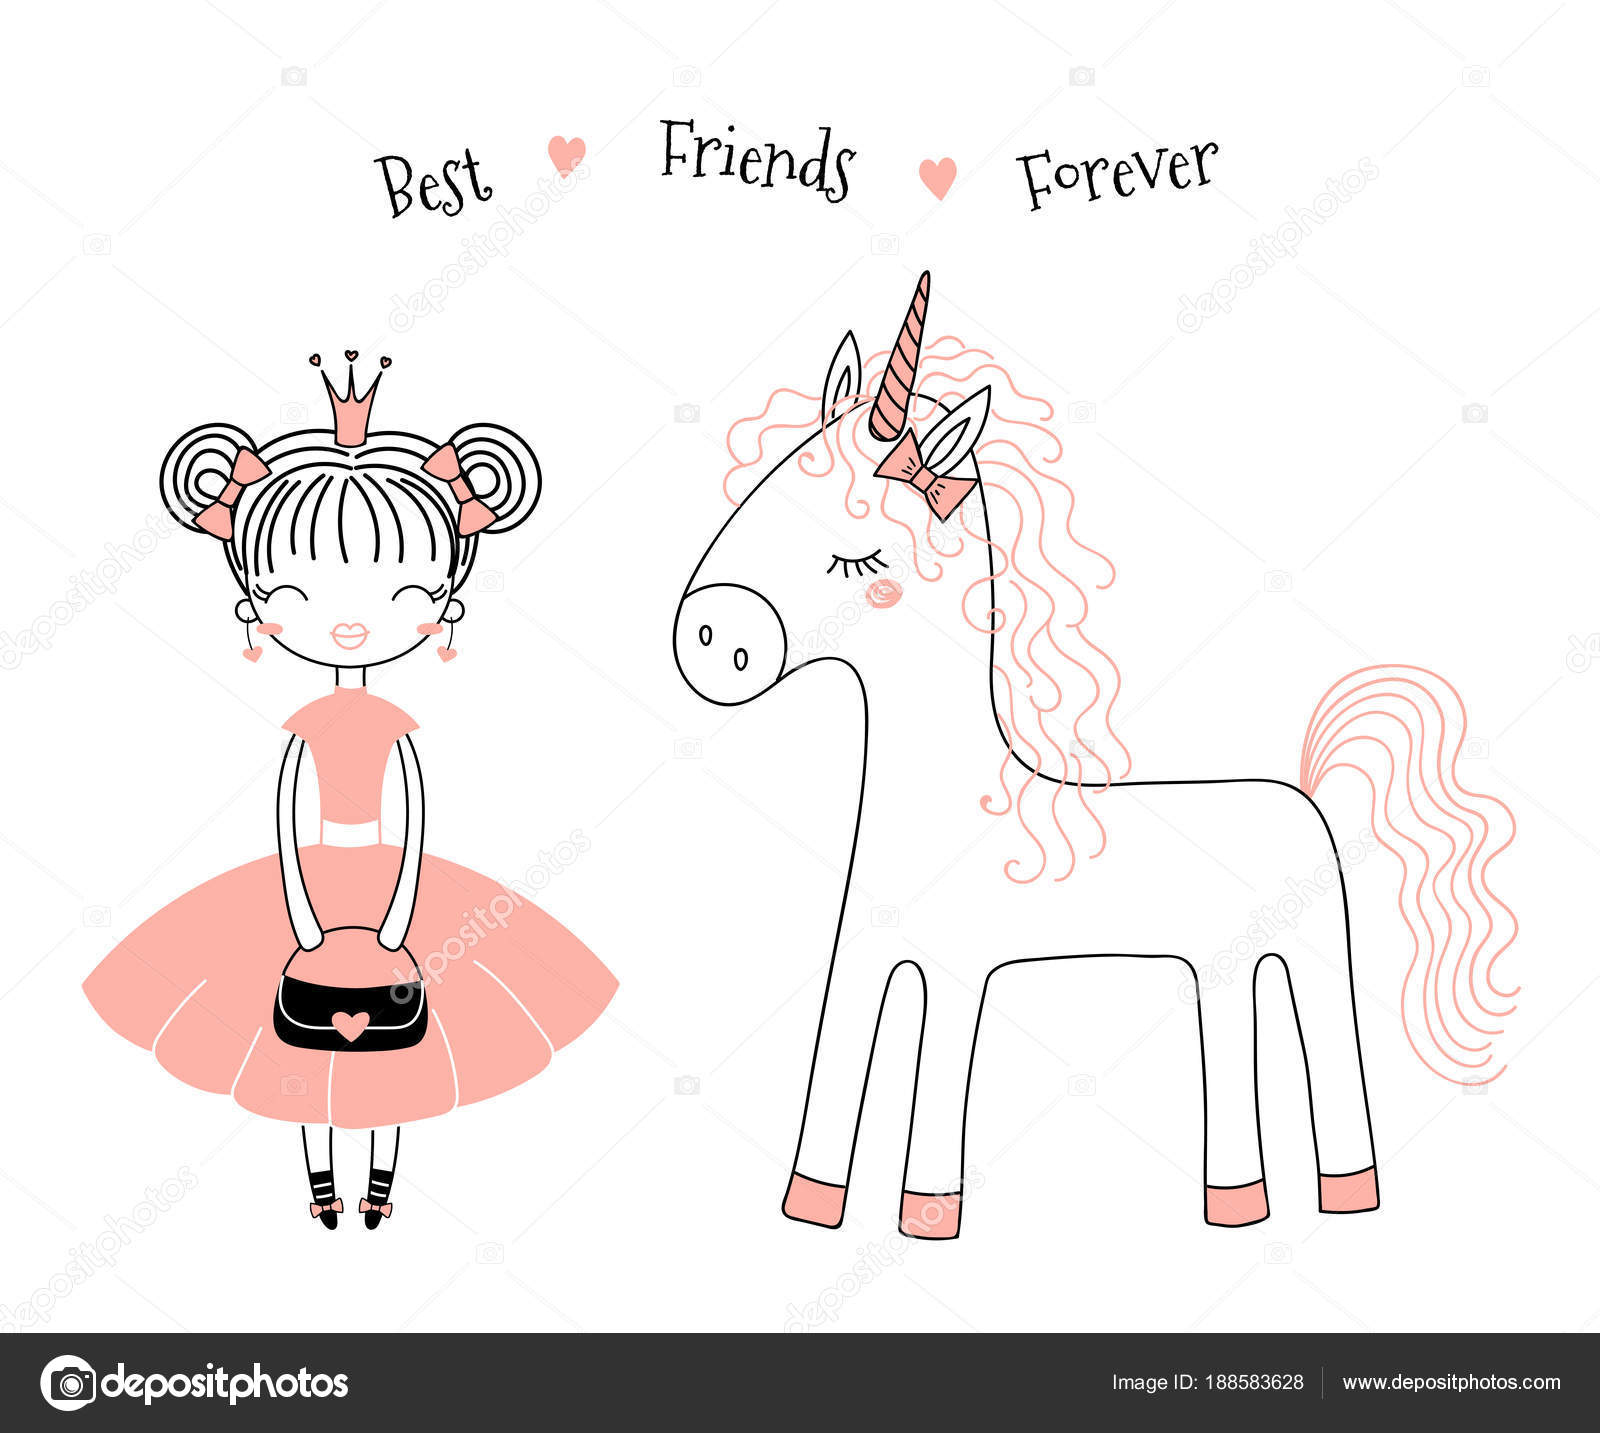 Hand Drawn Vector Illustration Of A Cute Little Princess In A Pink Dress  And A Unicorn, With Text. Isolated Objects On White Background. Line  Drawing.